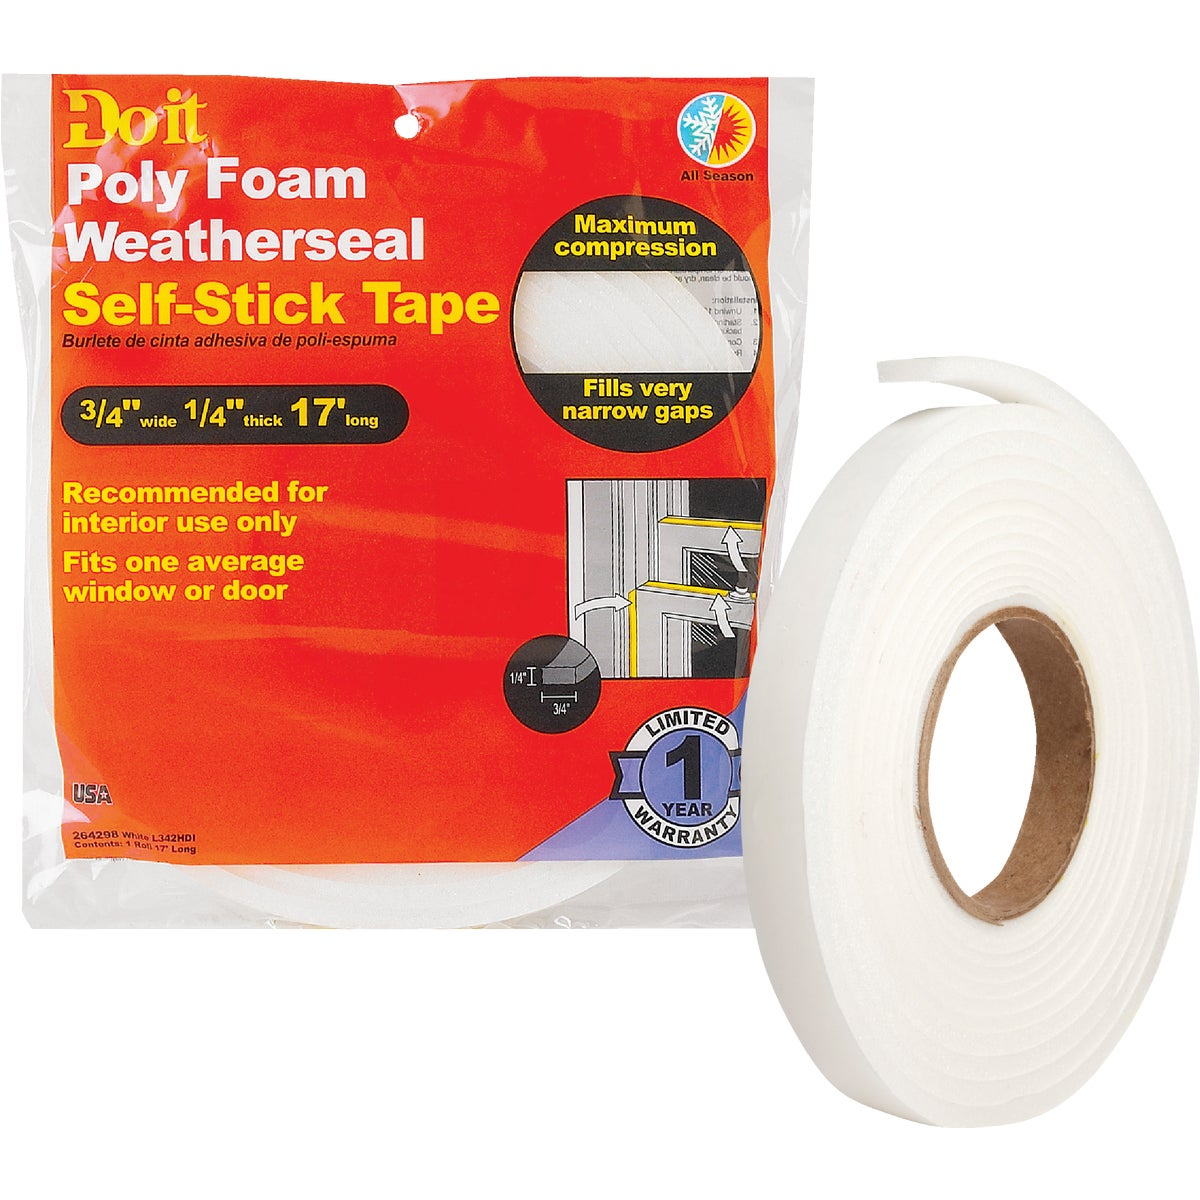 Thermwell Prods. Co. 3/4X1/4X17 WEATHER STRIP L342HDI